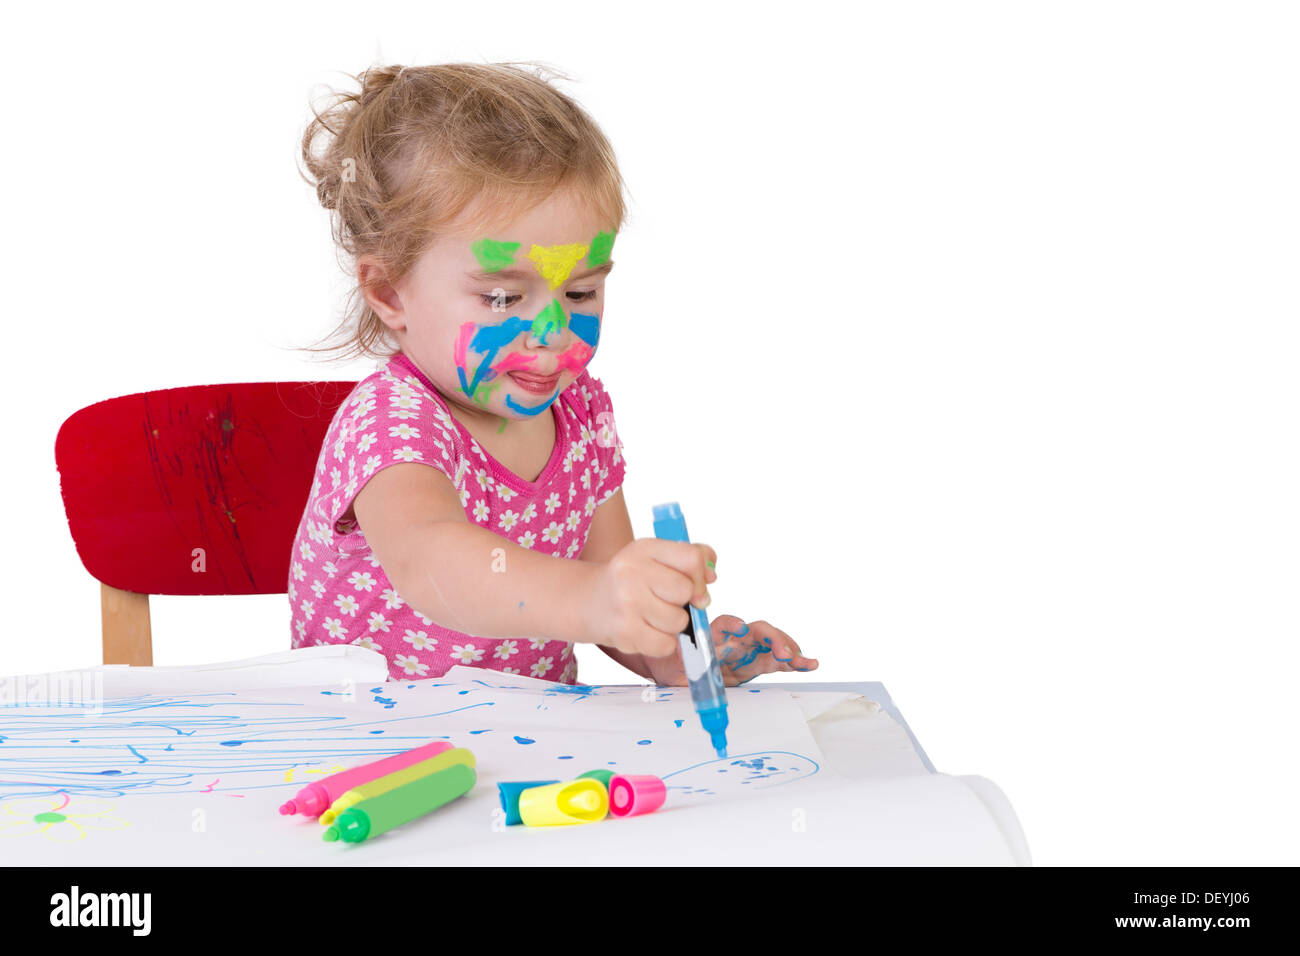 Toddler girl learning how to draw with coloring markers, her face ...